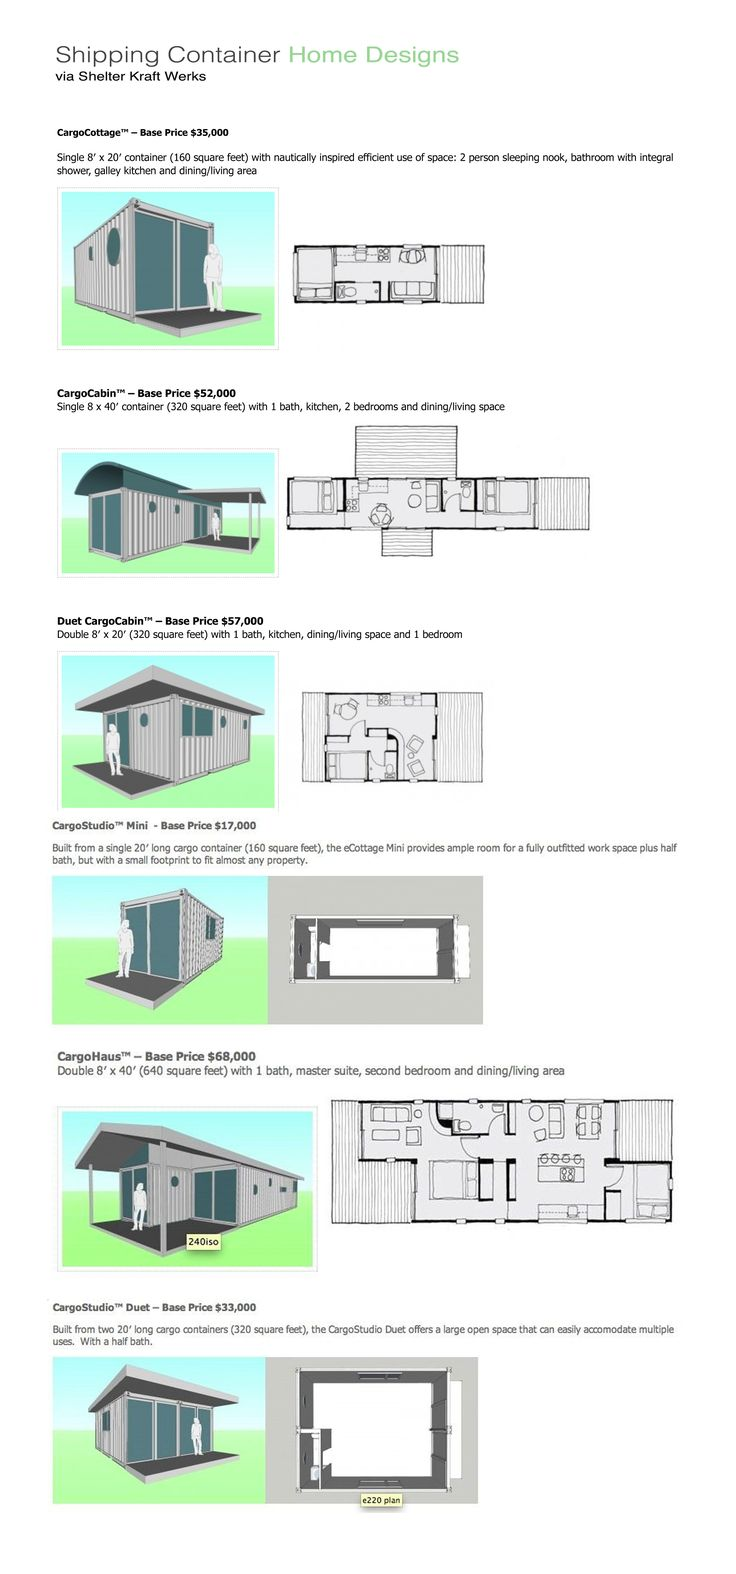 Shipping container home designs from Seattle-based retrofitter Shelter Kraft Werks (http://shelterkraft.com/residential-housing/stock-house-models/)